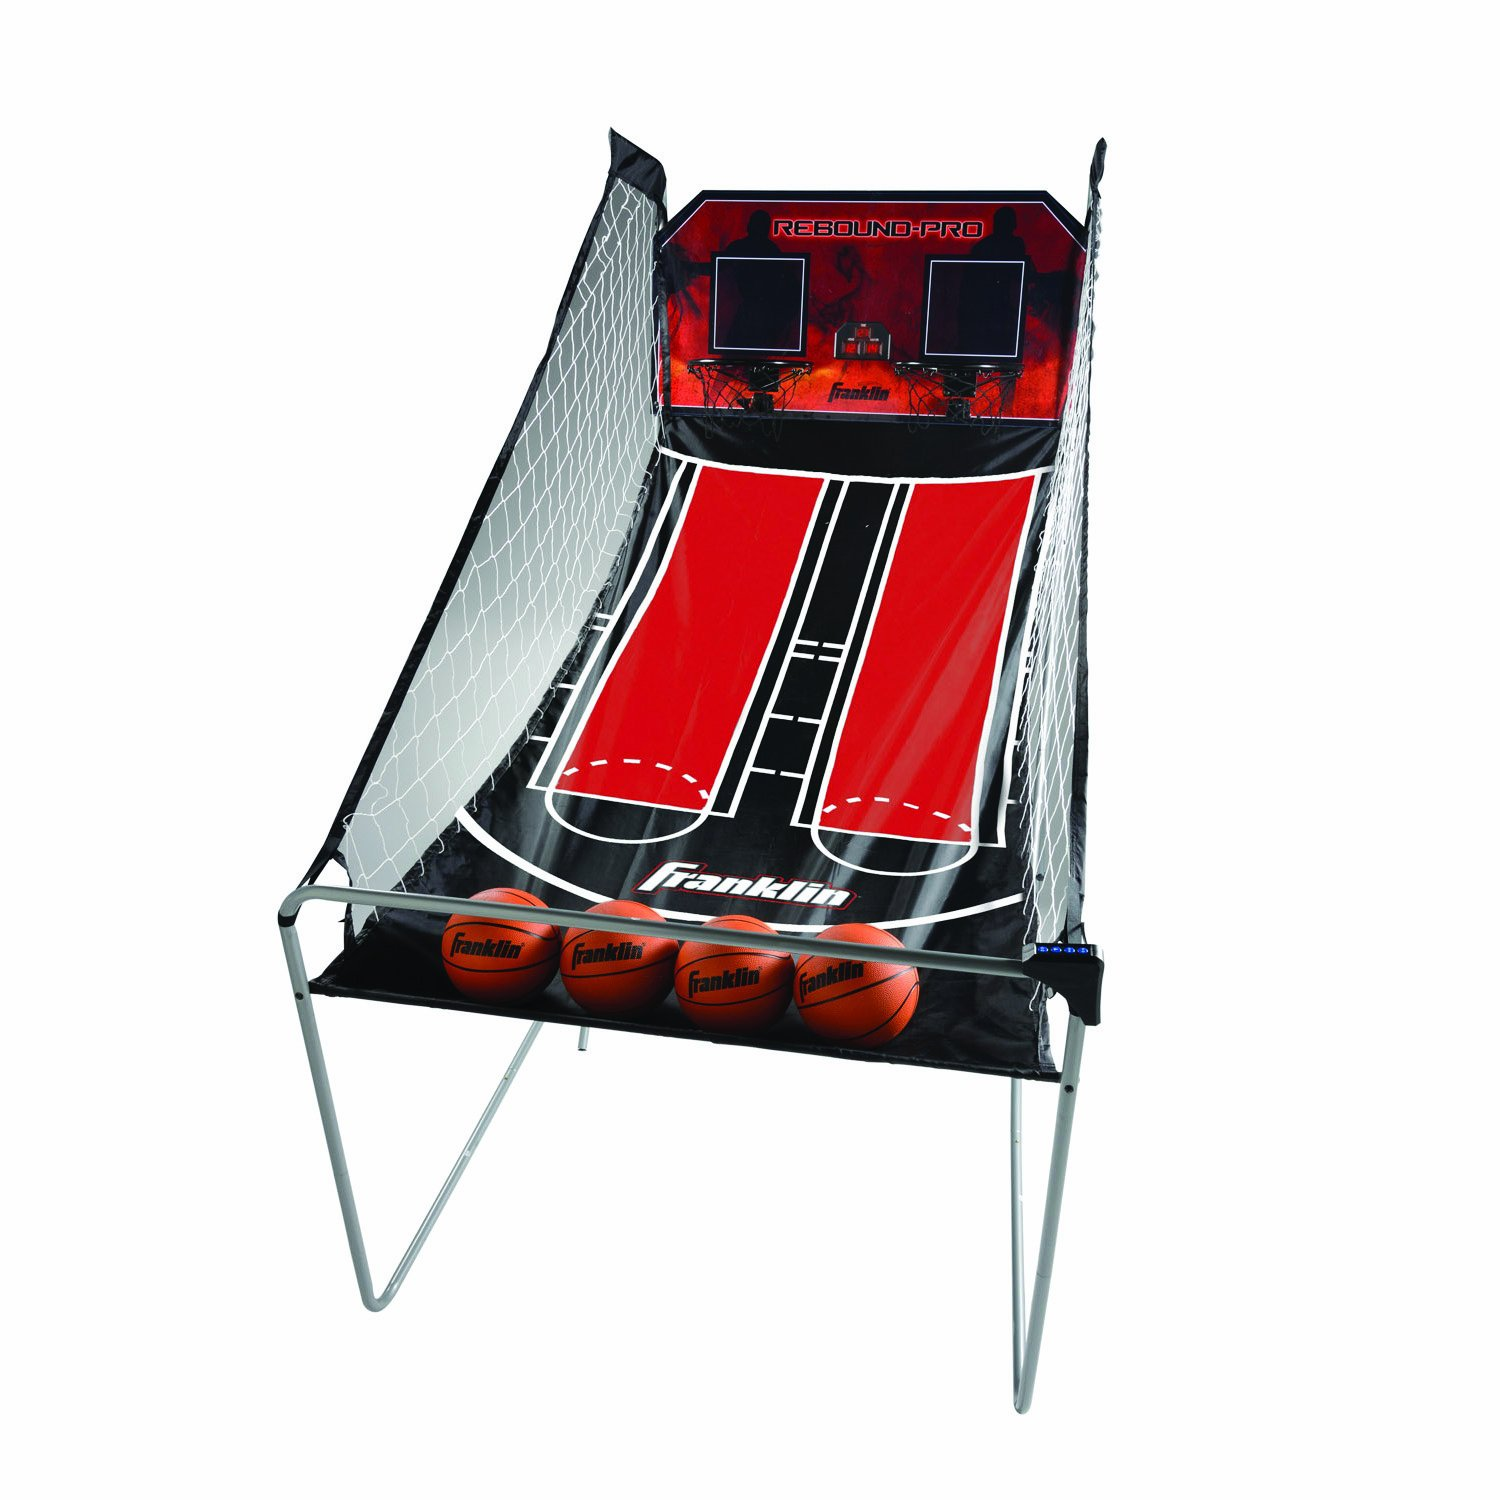 Franklin Sports Arcade Basketball - Indoor Basketball Shootout - 2 Players - Includes Electronic Scoreboard and 4 Mini Basketballs by Franklin Sports